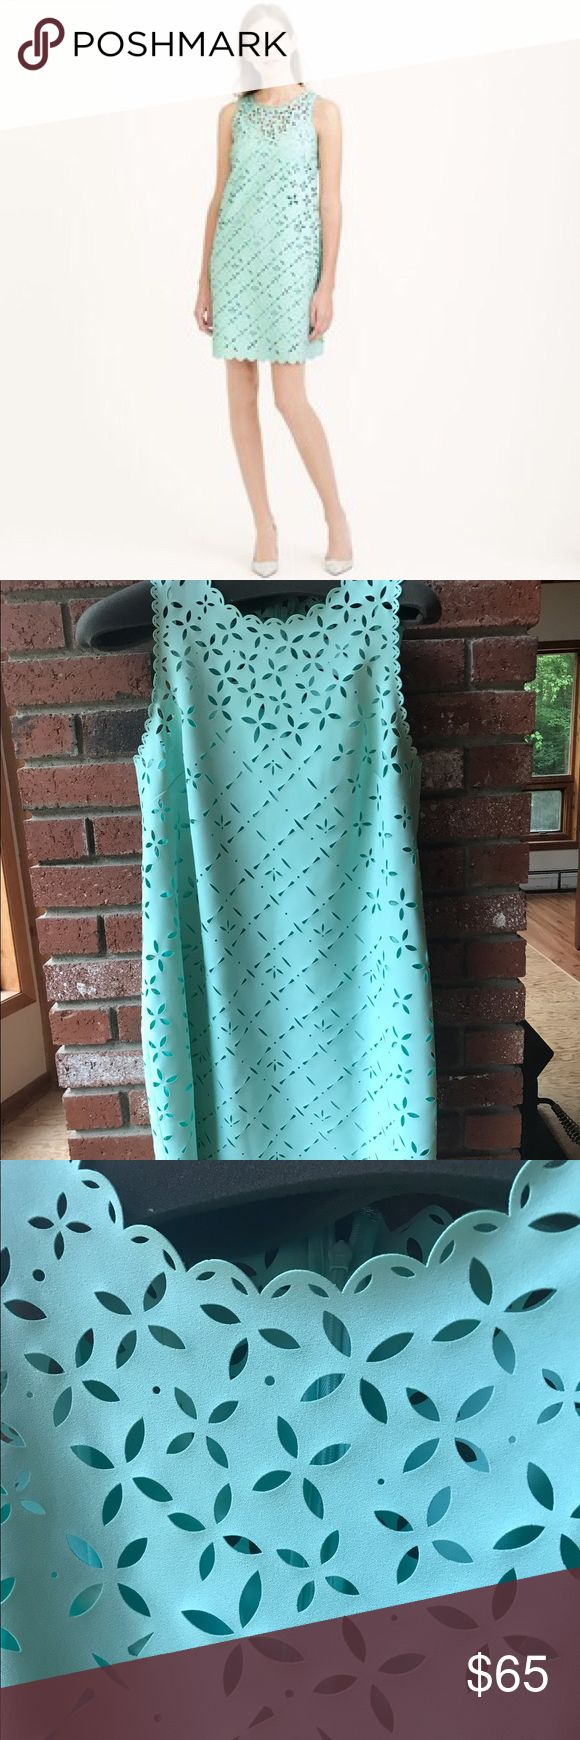 J.crew Laser Cut Floral Shift Dress 12 - mint NWOT J.crew (not the outlet, real jcrew) Laser cut floral shift dress women's size 12. Never been worn. Adorable for summer! Has the slip too. Fits true to size although a size 10 could wear it too. J. Crew Dresses Midi